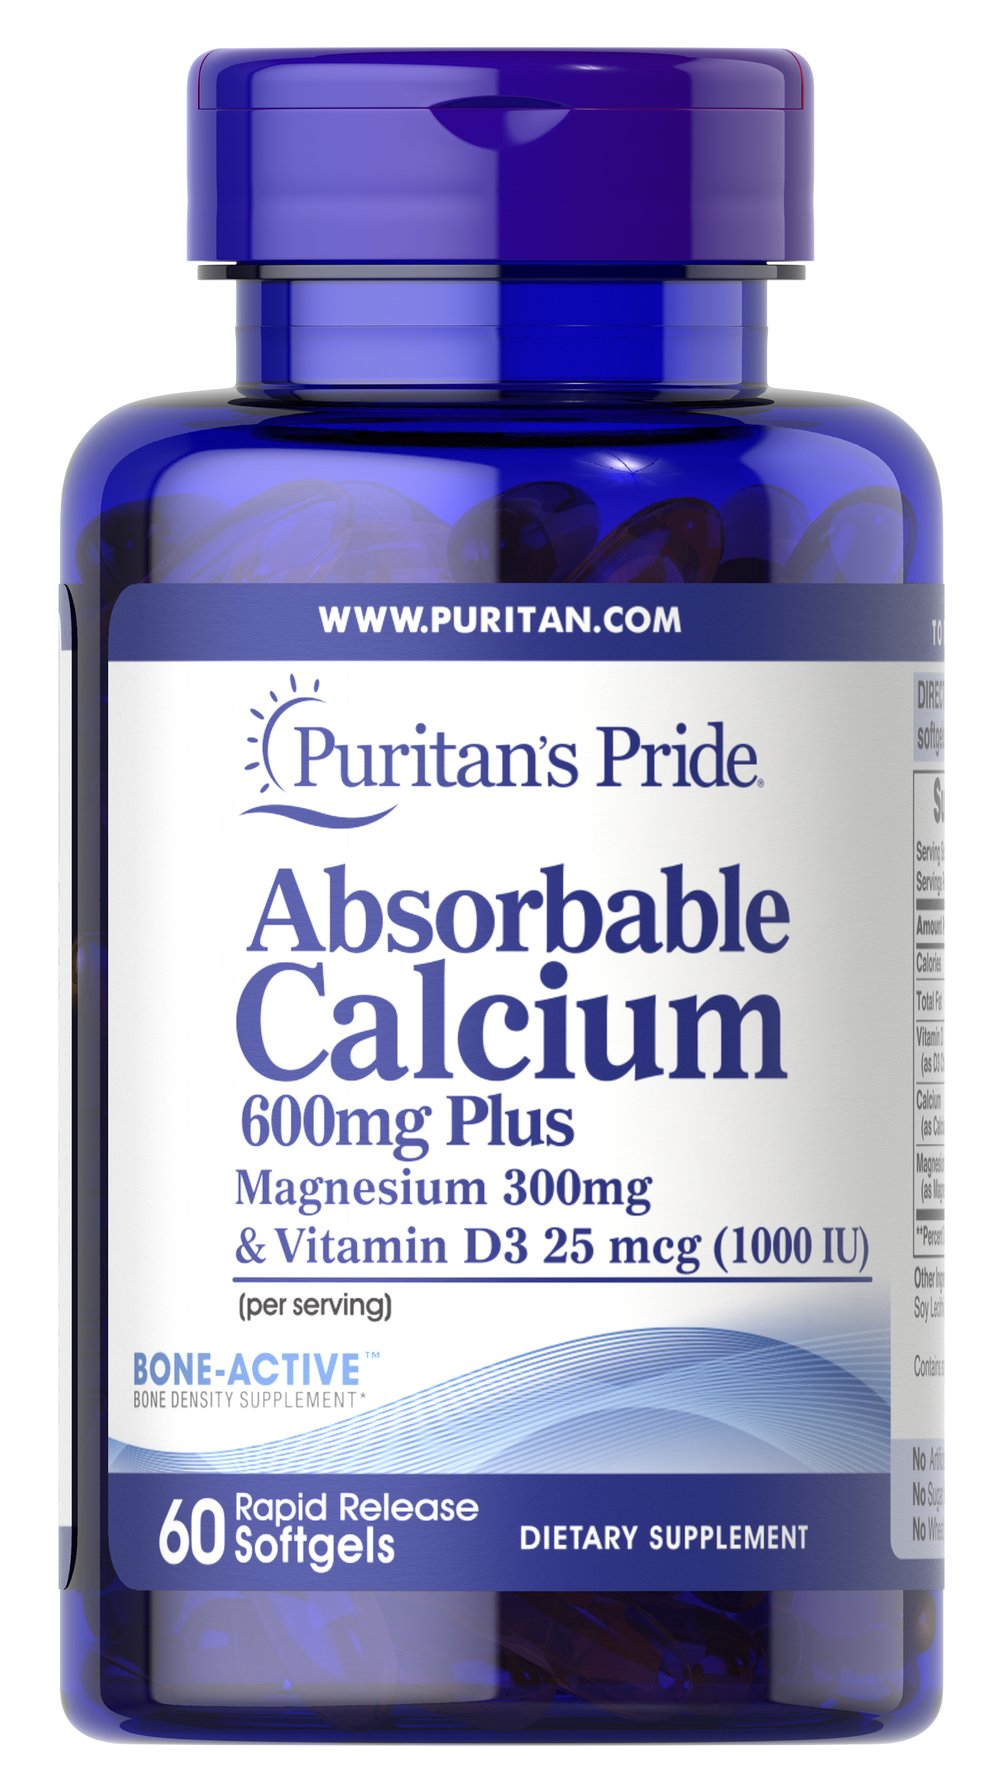 Absorbable Calcium 600mg plus Magnesium 300mg & Vitamin D 1000iu <p>Bone-Active™ Bone Density Supplement<br /><br />Puritan's Pride® Premium supplements are produced from the finest raw materials under our stringent quality control standards. Our state-of-the-art manufacturing and packaging facilities insure you the highest quality nutritional supplements money can buy. When it comes to your health...choose the best.</p><p></p><p></p> 60 S